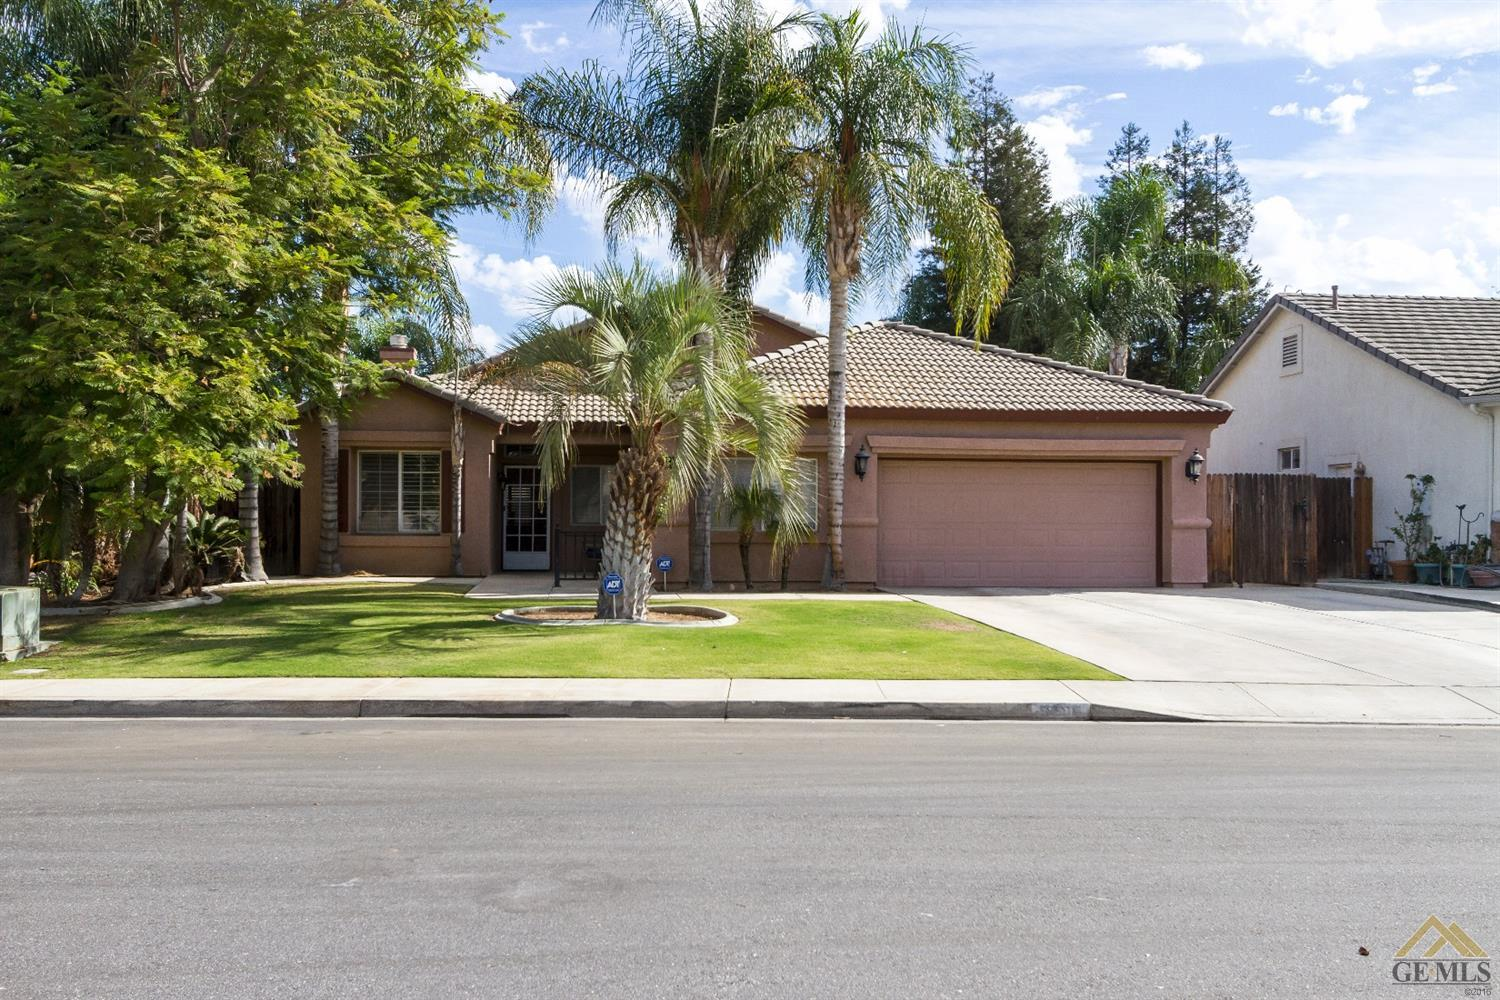 5500 Cove Ct, Bakersfield, CA 93312